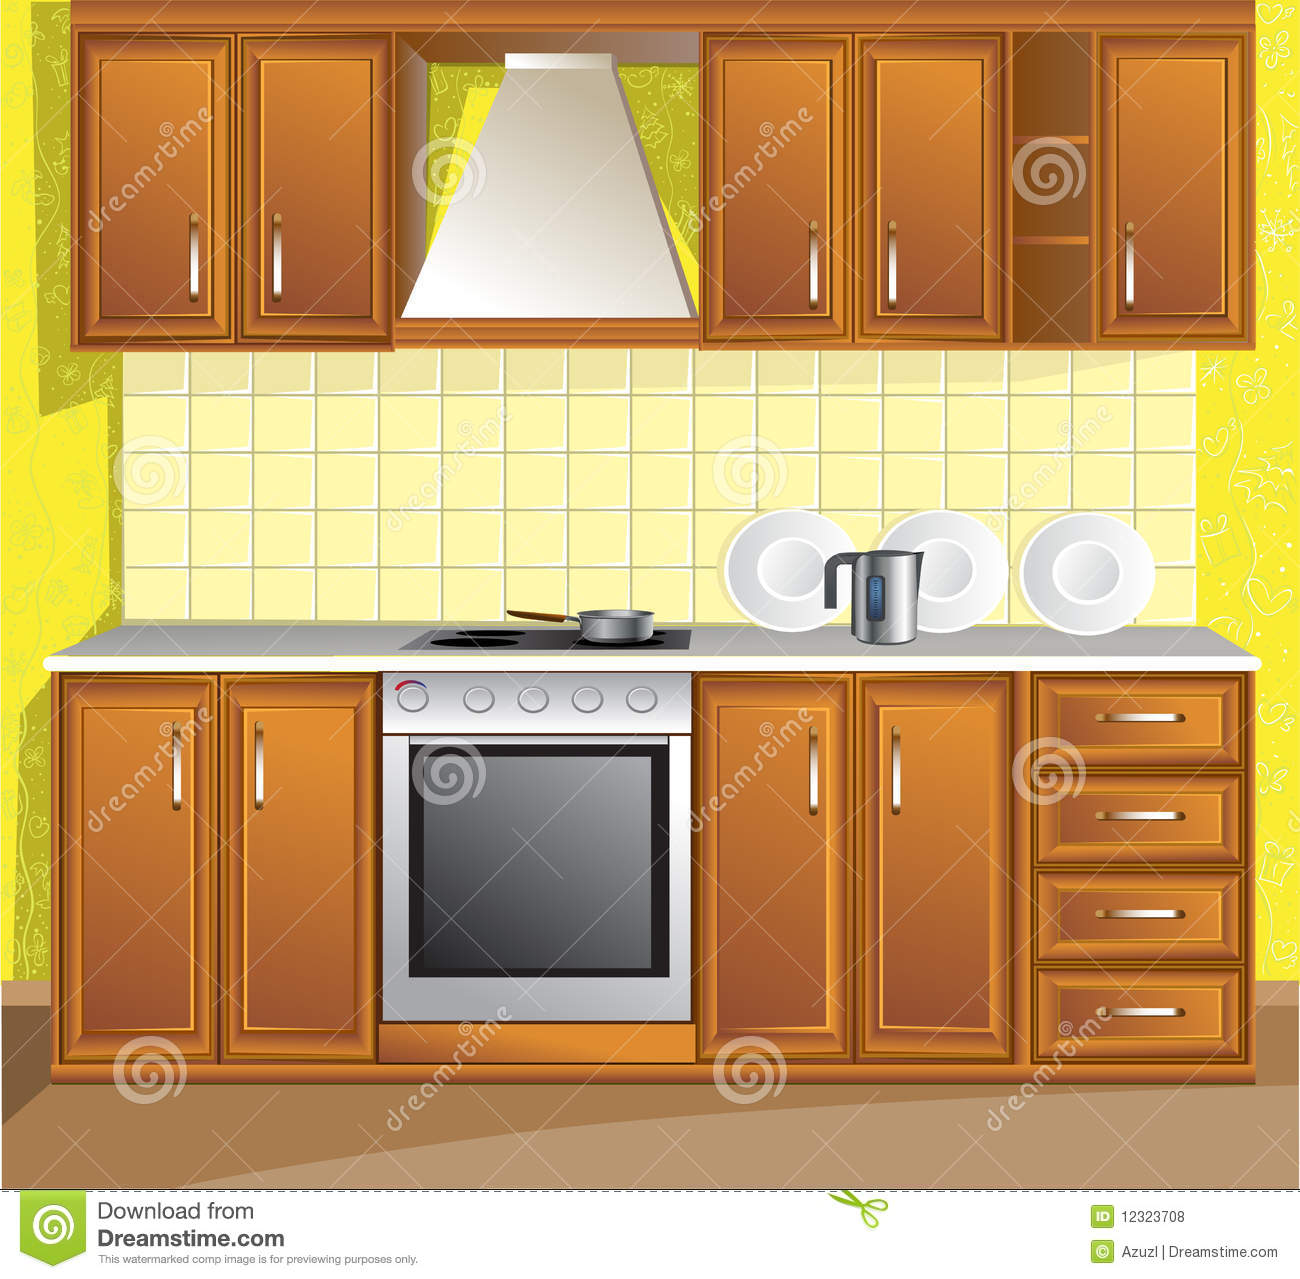 Kitchen Cabinet Clip Art: Light Kitchen Room Stock Vector. Illustration Of Dish